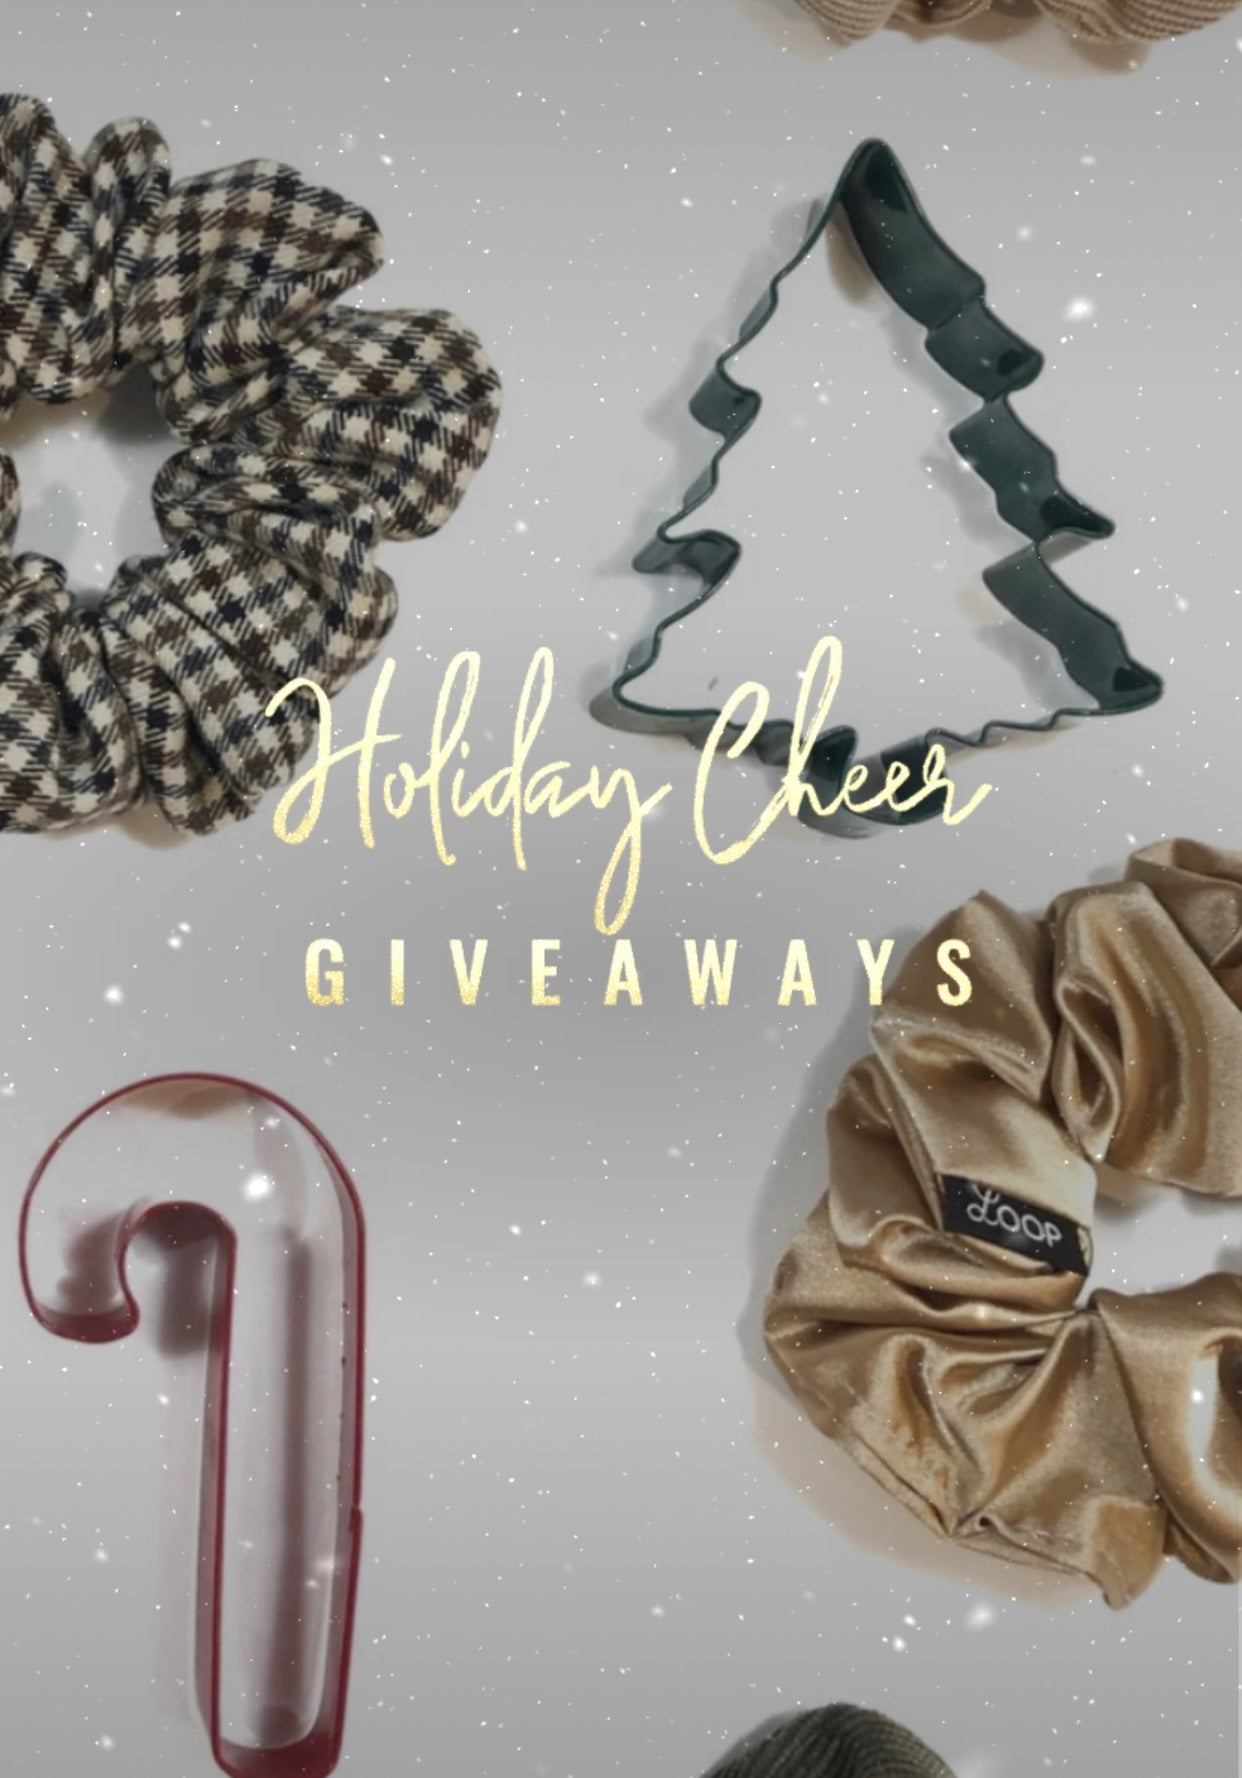 LOOP's Eight Days of Holiday Cheer Giveaways !